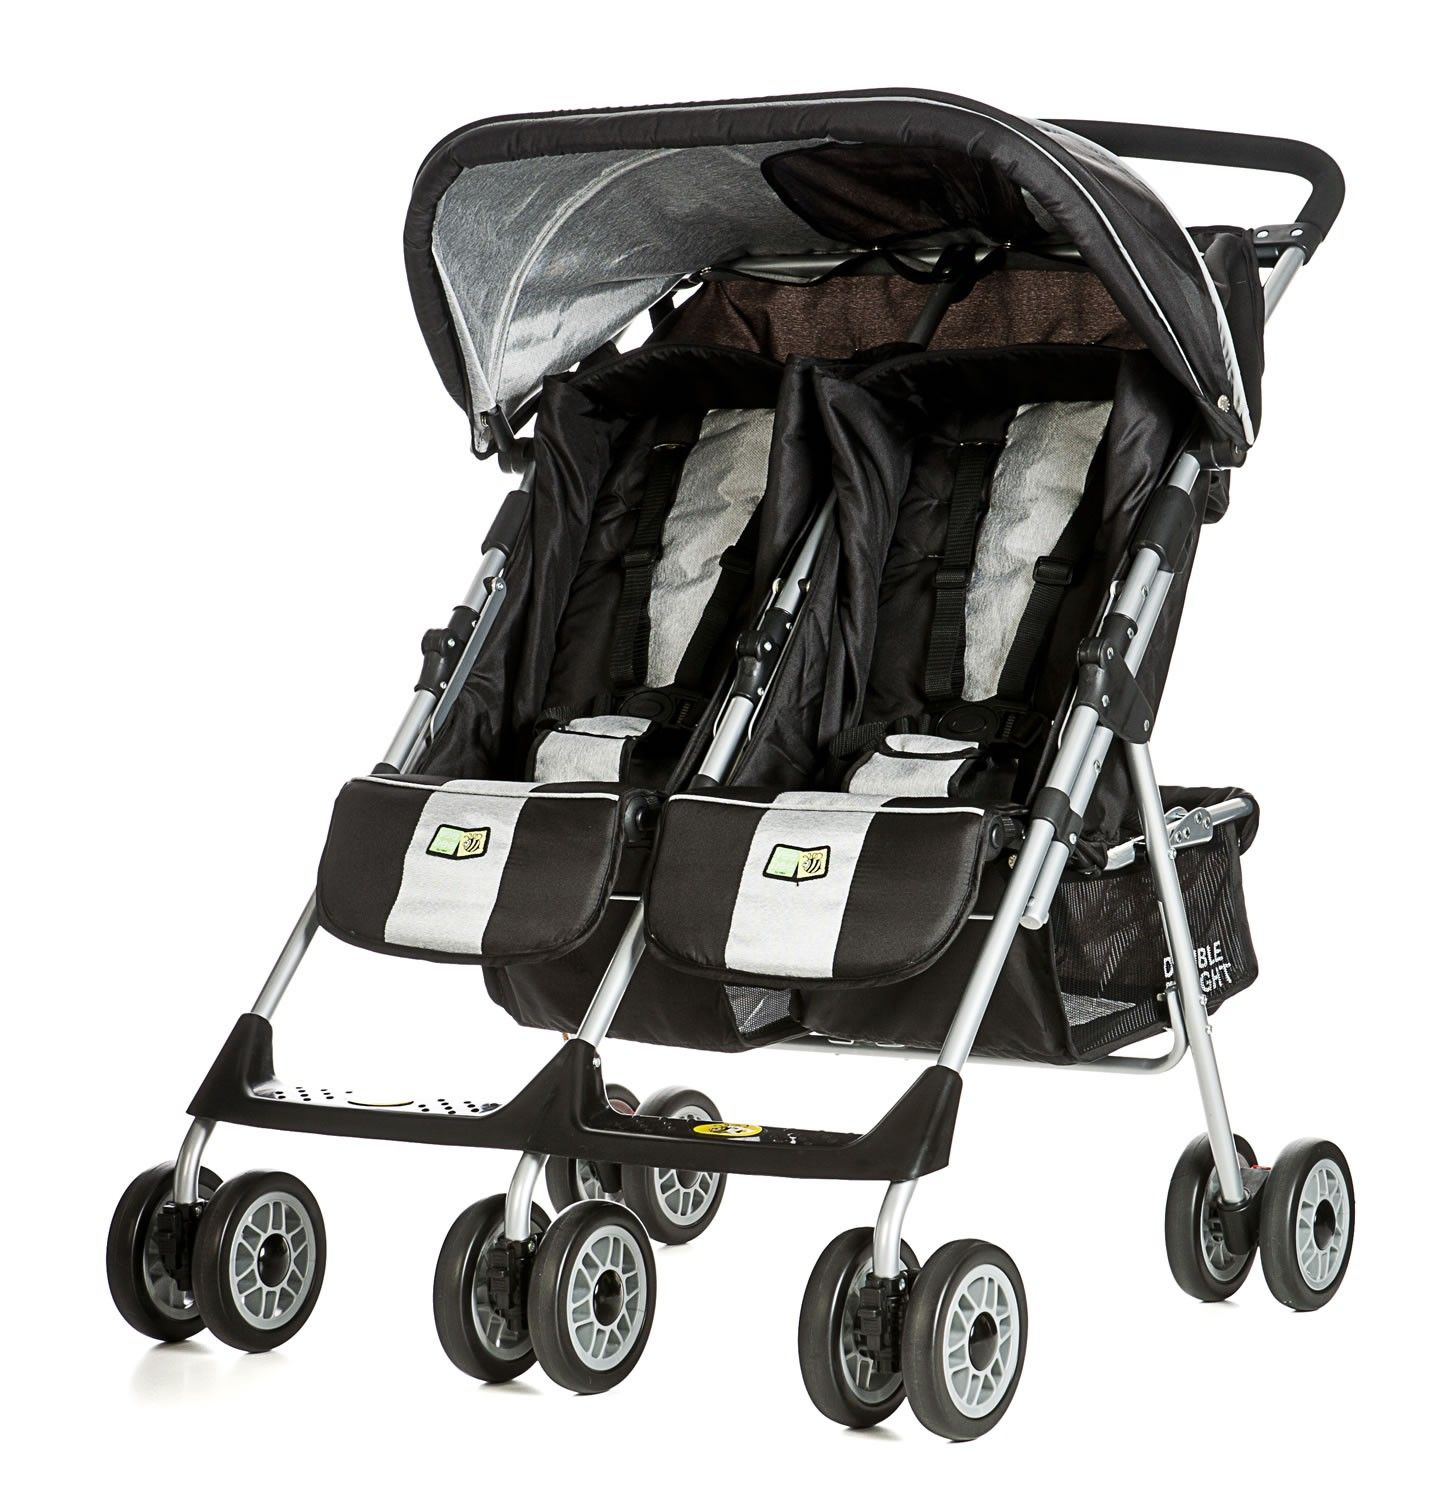 Kinderwagen Easywalker Duo Easywalker Duo Plus Double Pram Coal Black Twin Gear